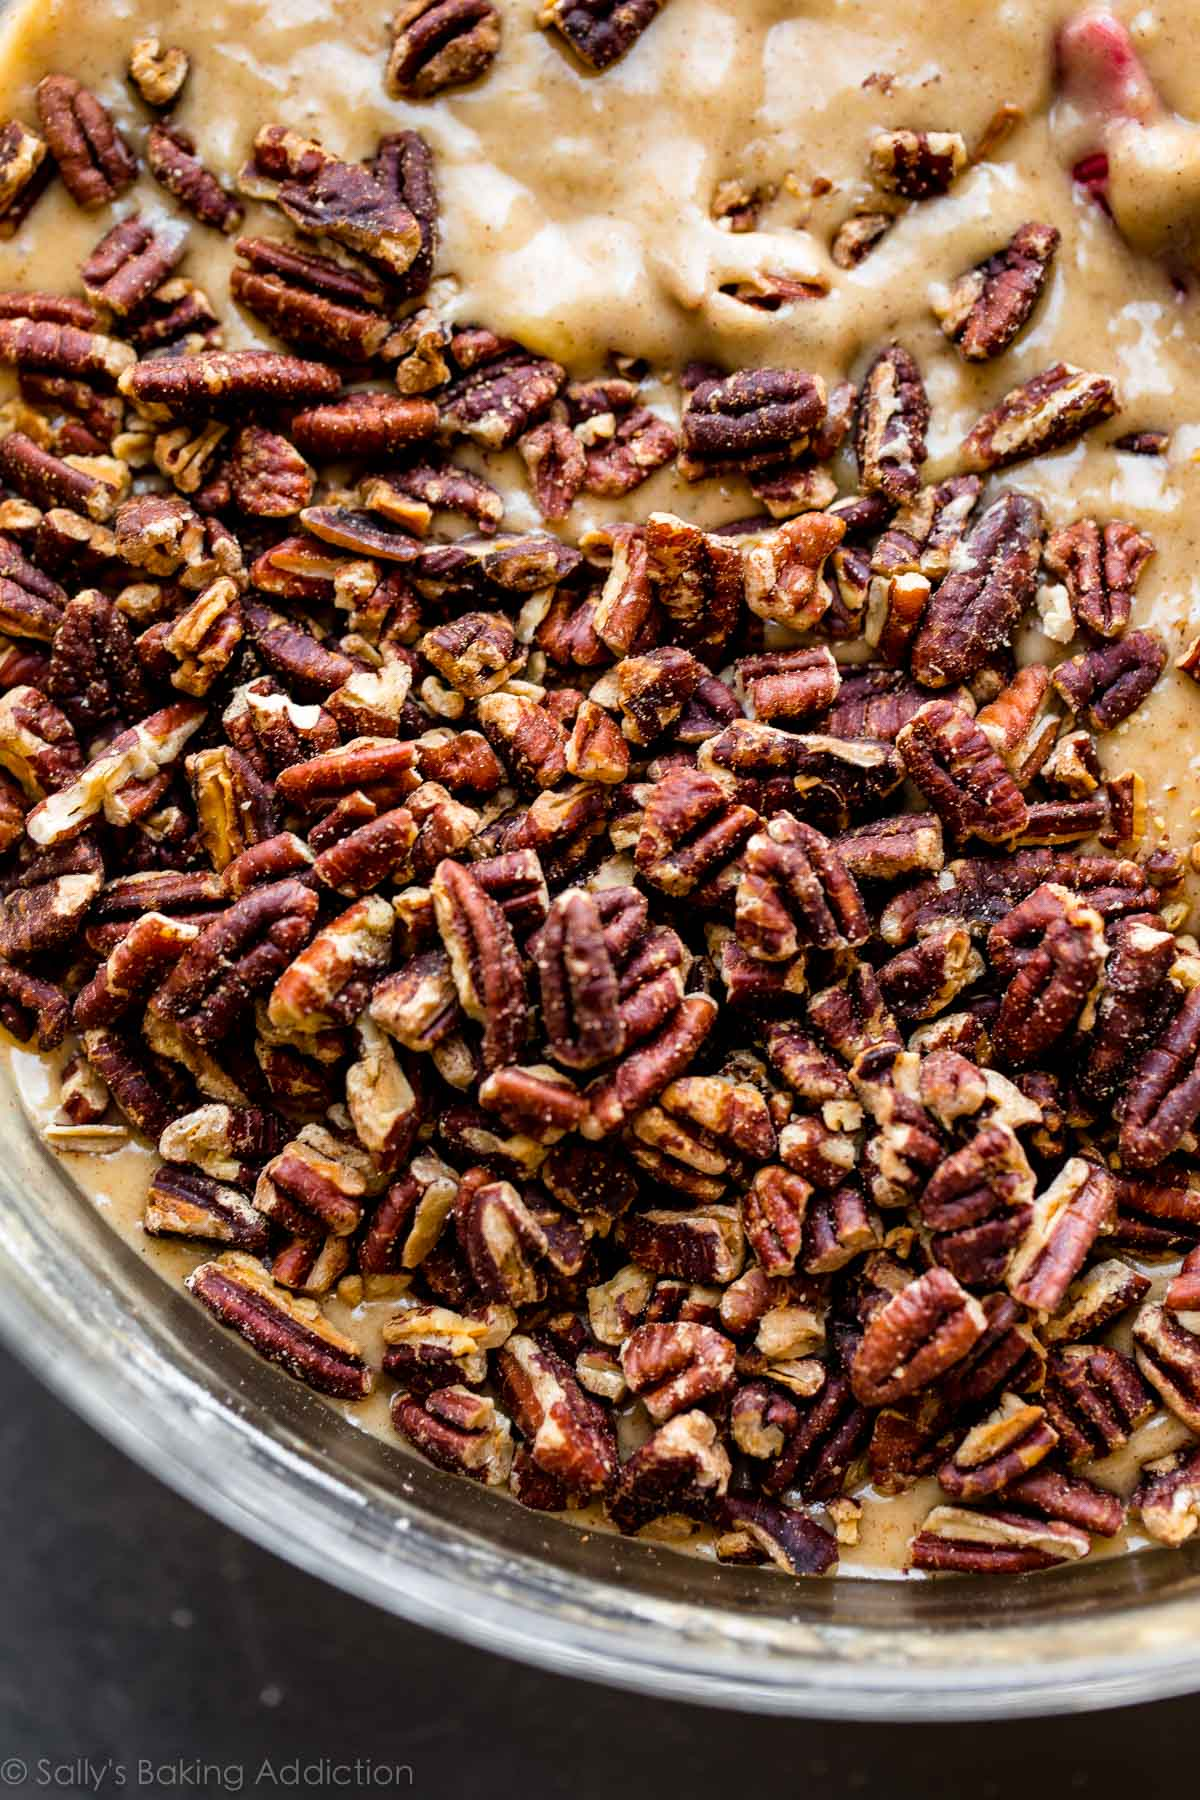 Toasted pecans on sallysbakingaddiction.com